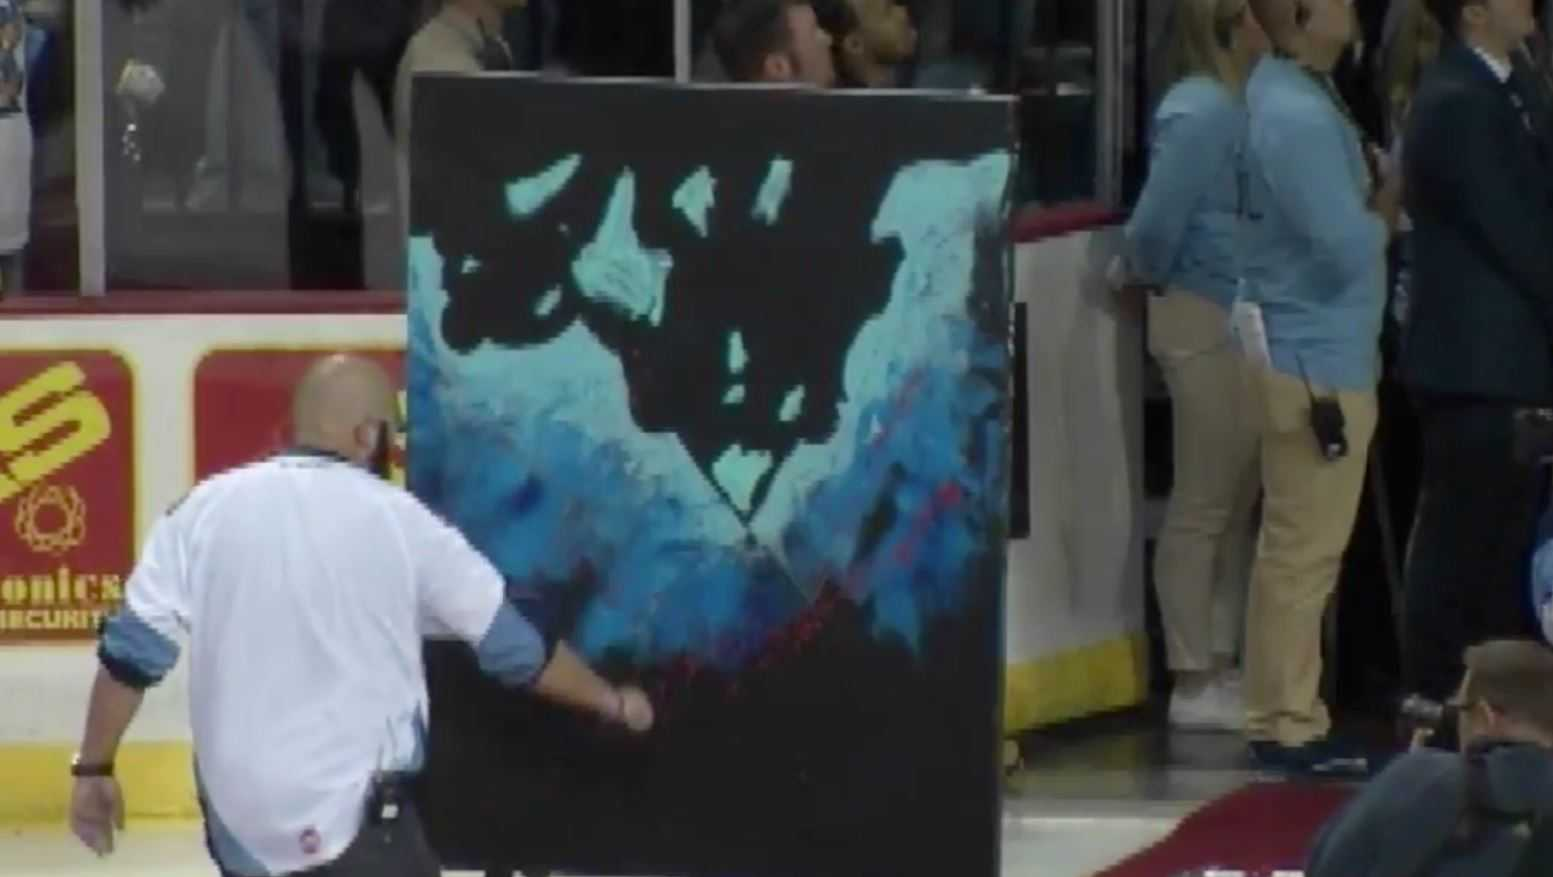 Jo Everson sings national anthem while painting